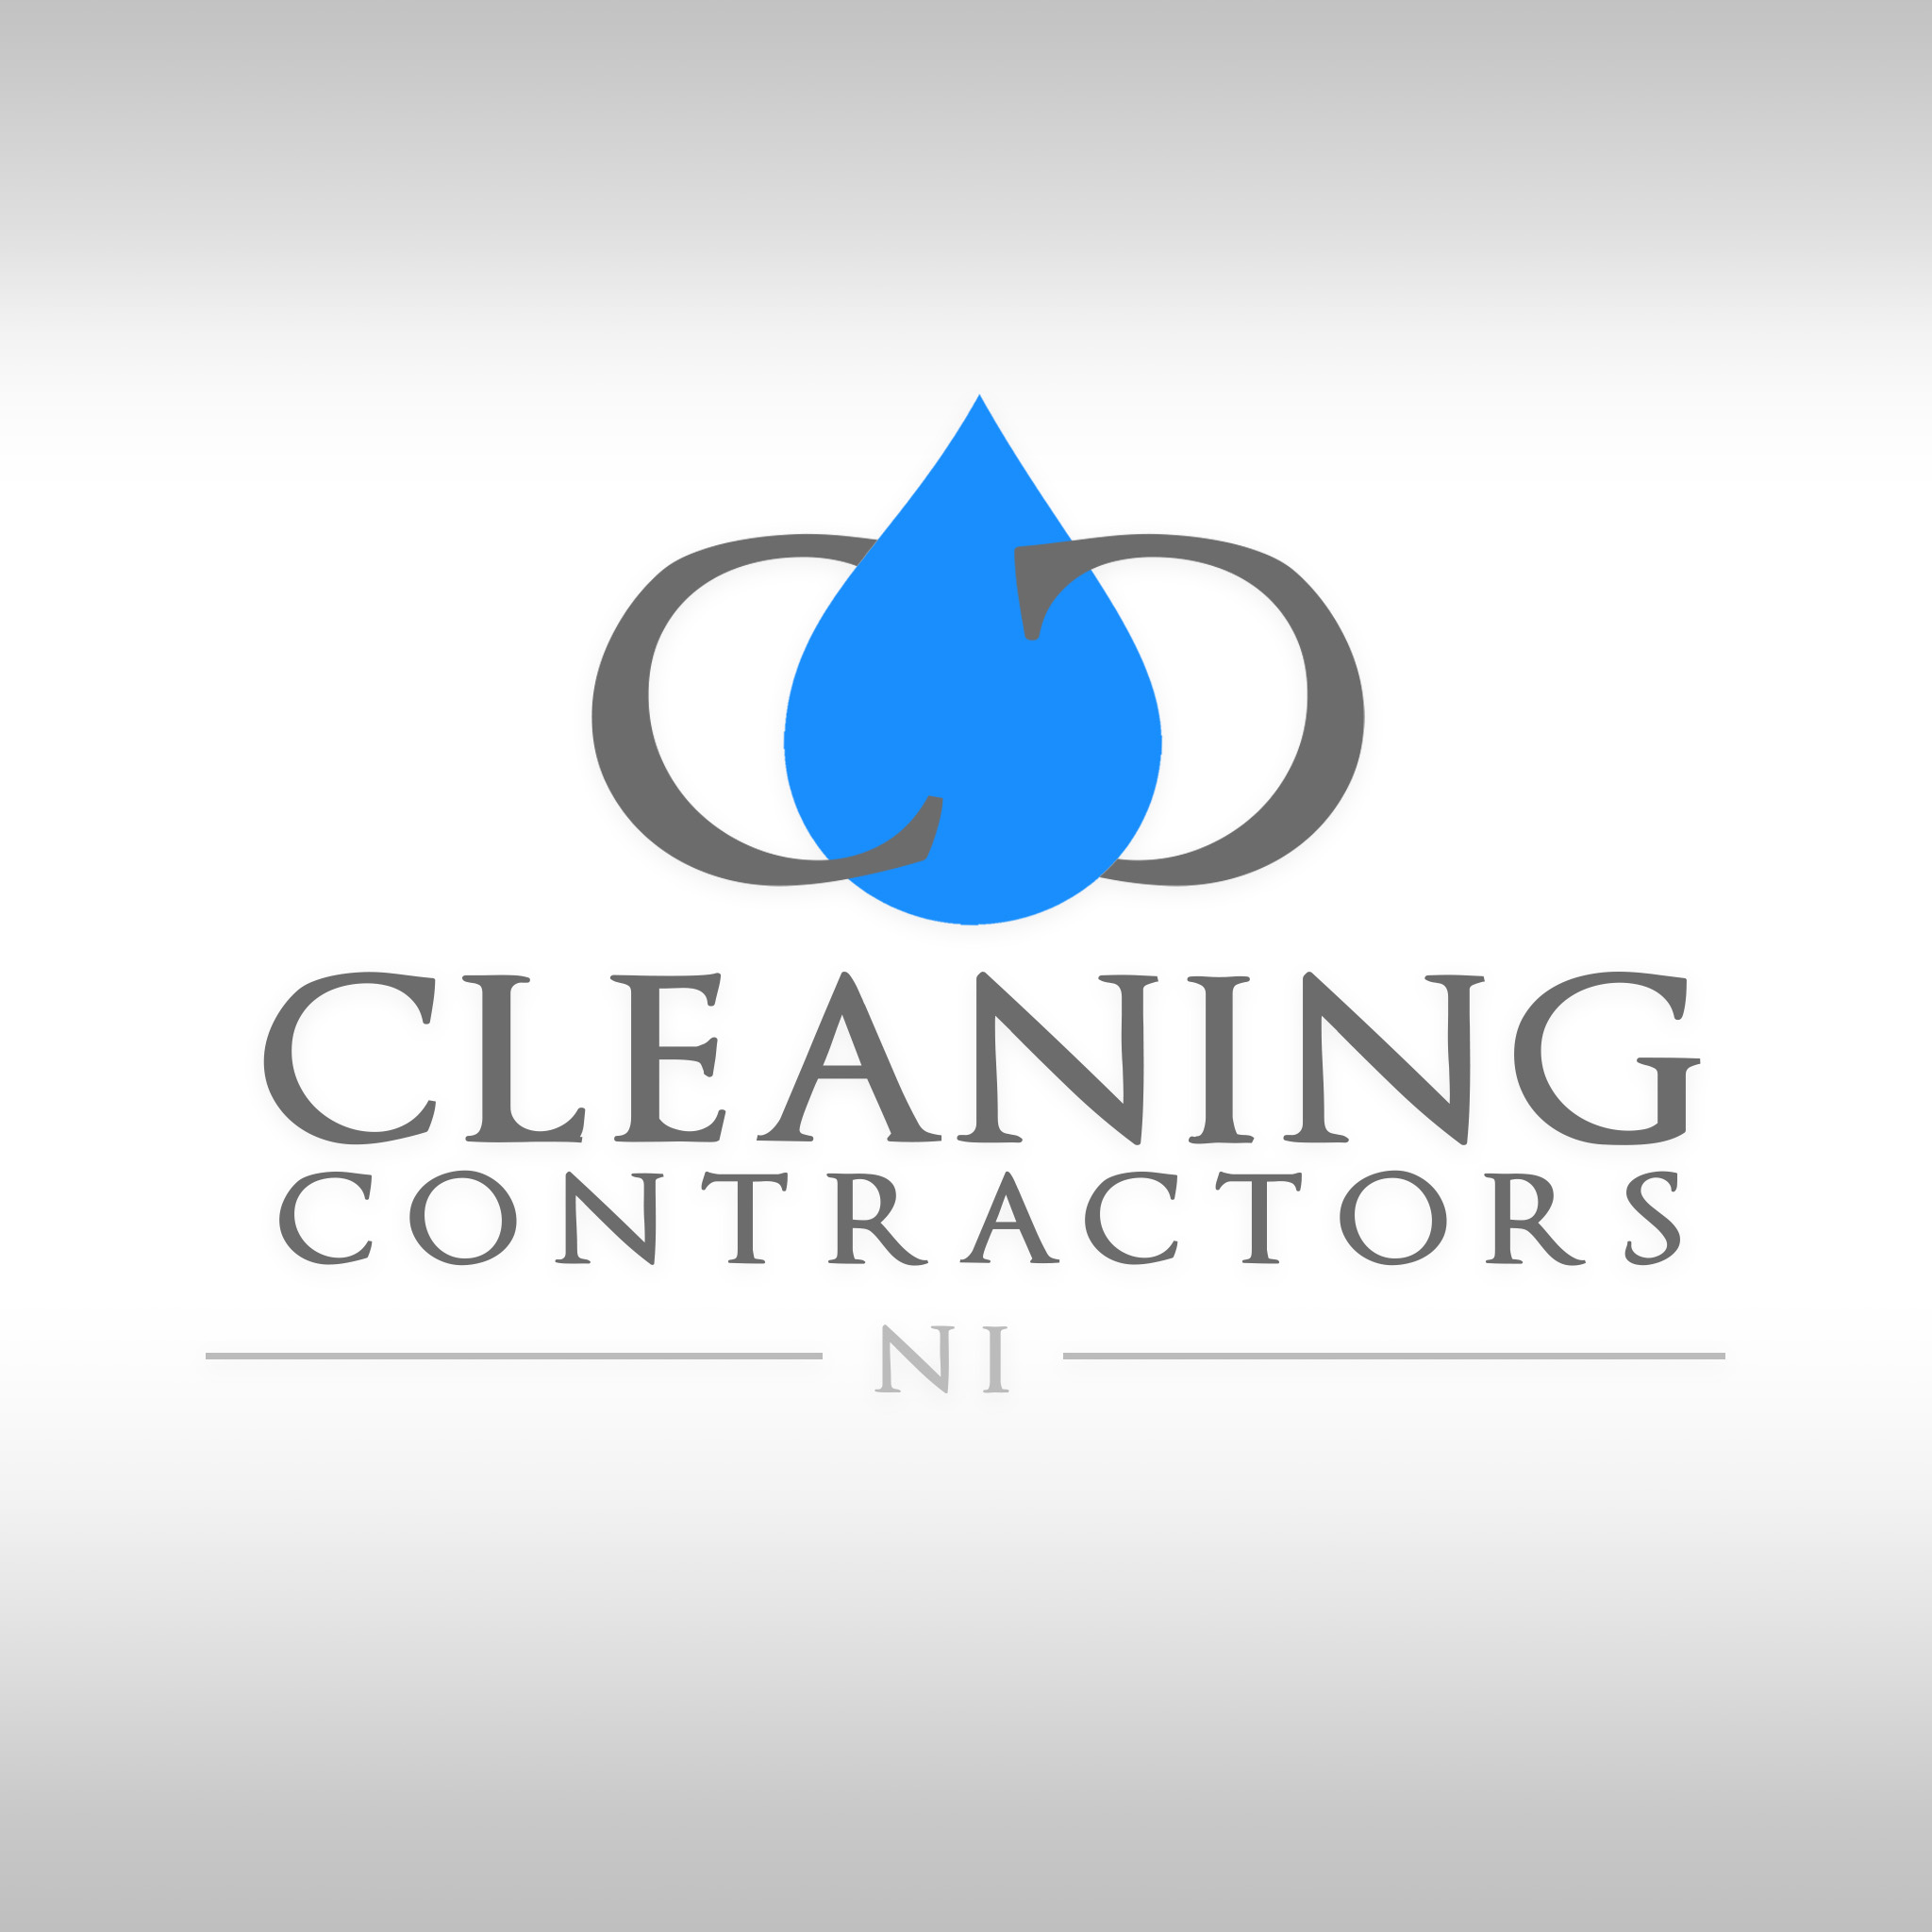 Cleaning Contractors NI trading as Causeway Cleaning Ltd